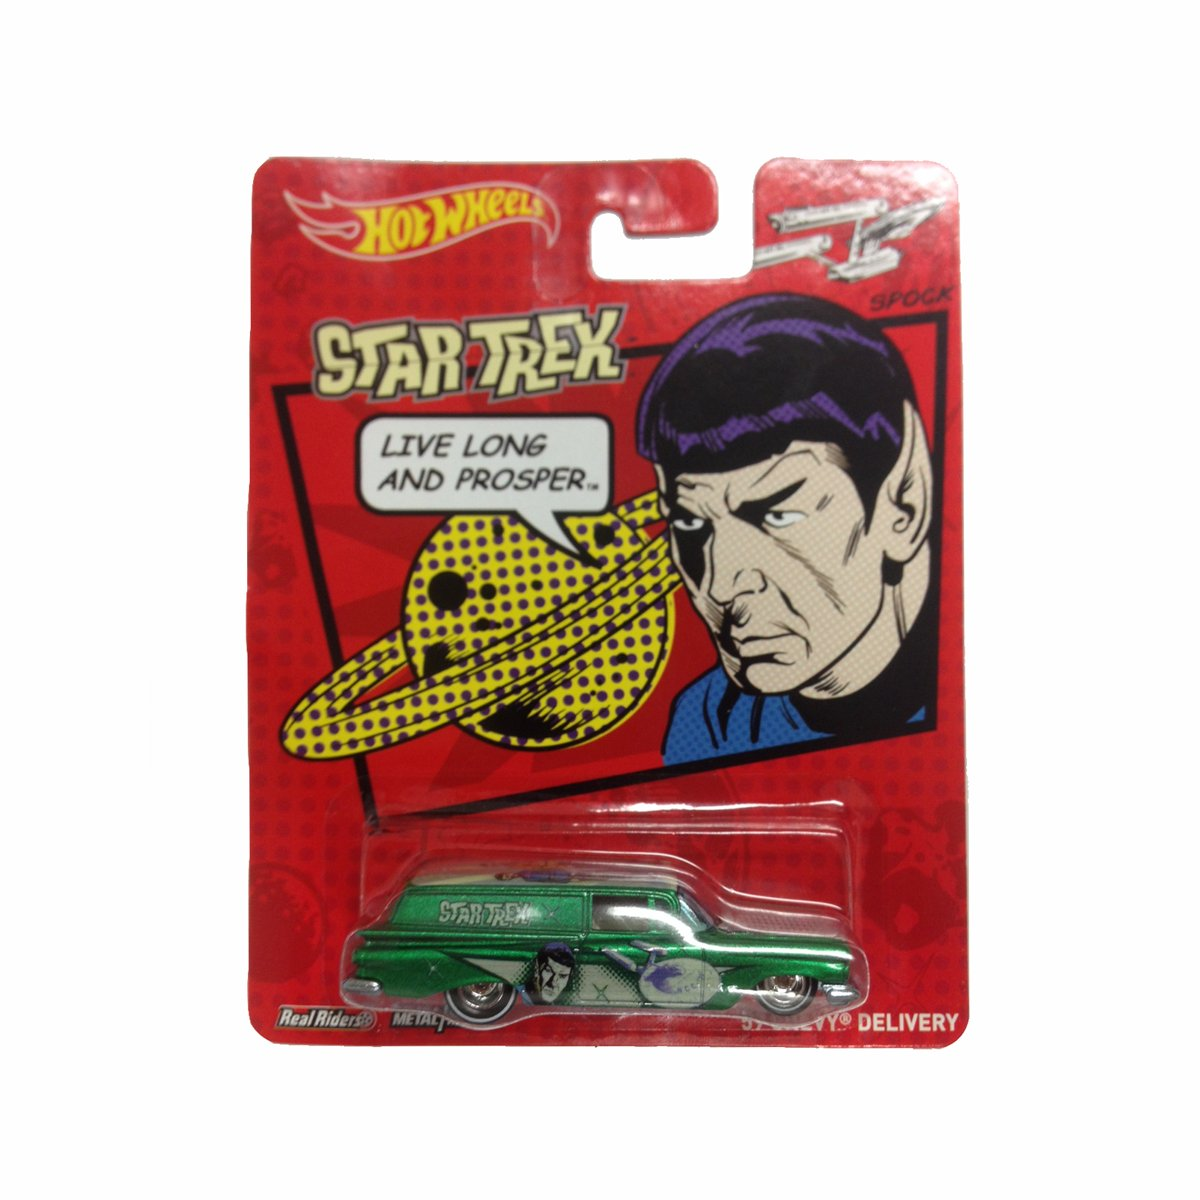 Star Trek Hot Toys Hot Wheels Star Trek Die-cast